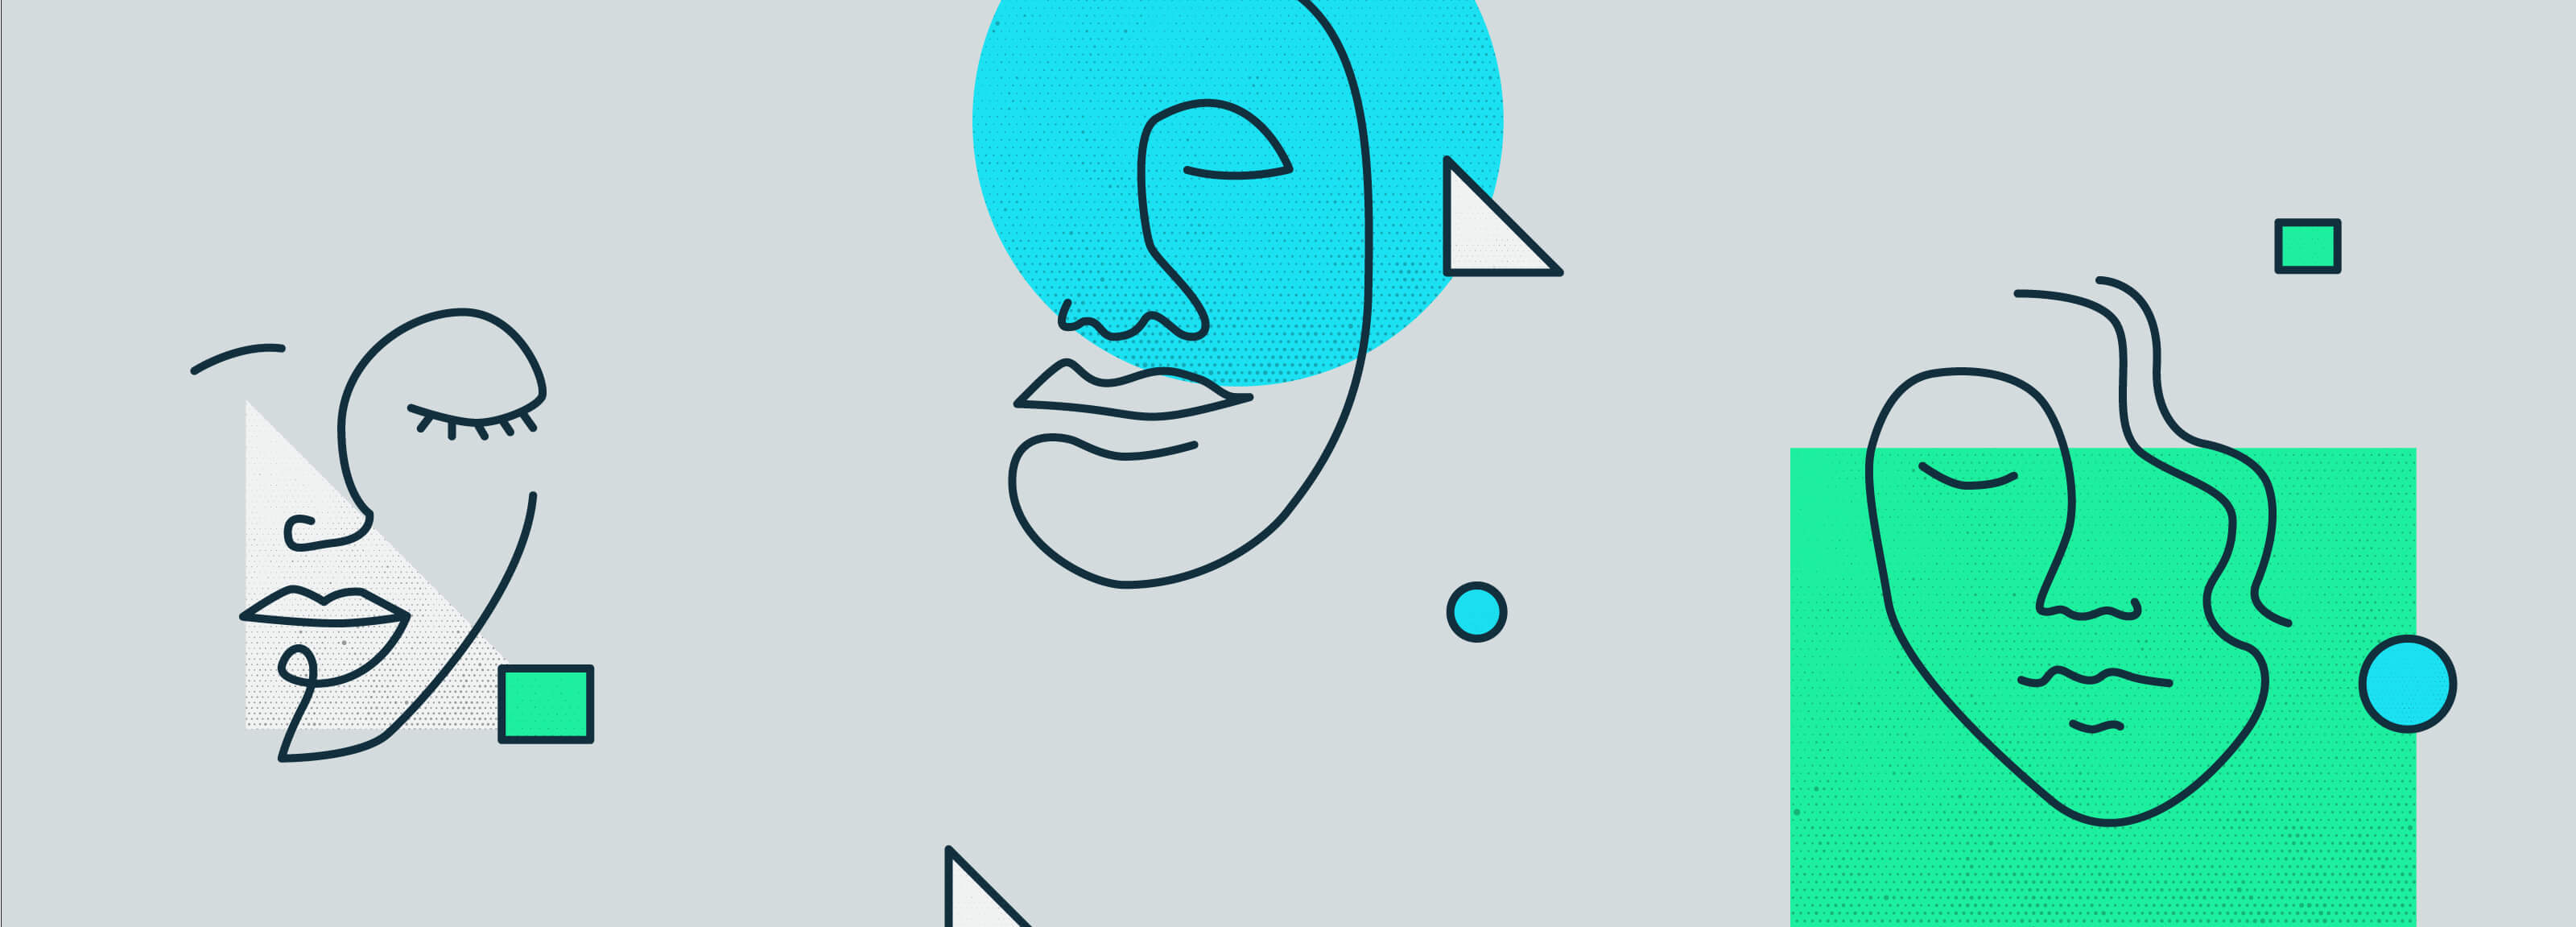 Contour line drawings of faces with green and cyan shapes for Age of Empathy article.